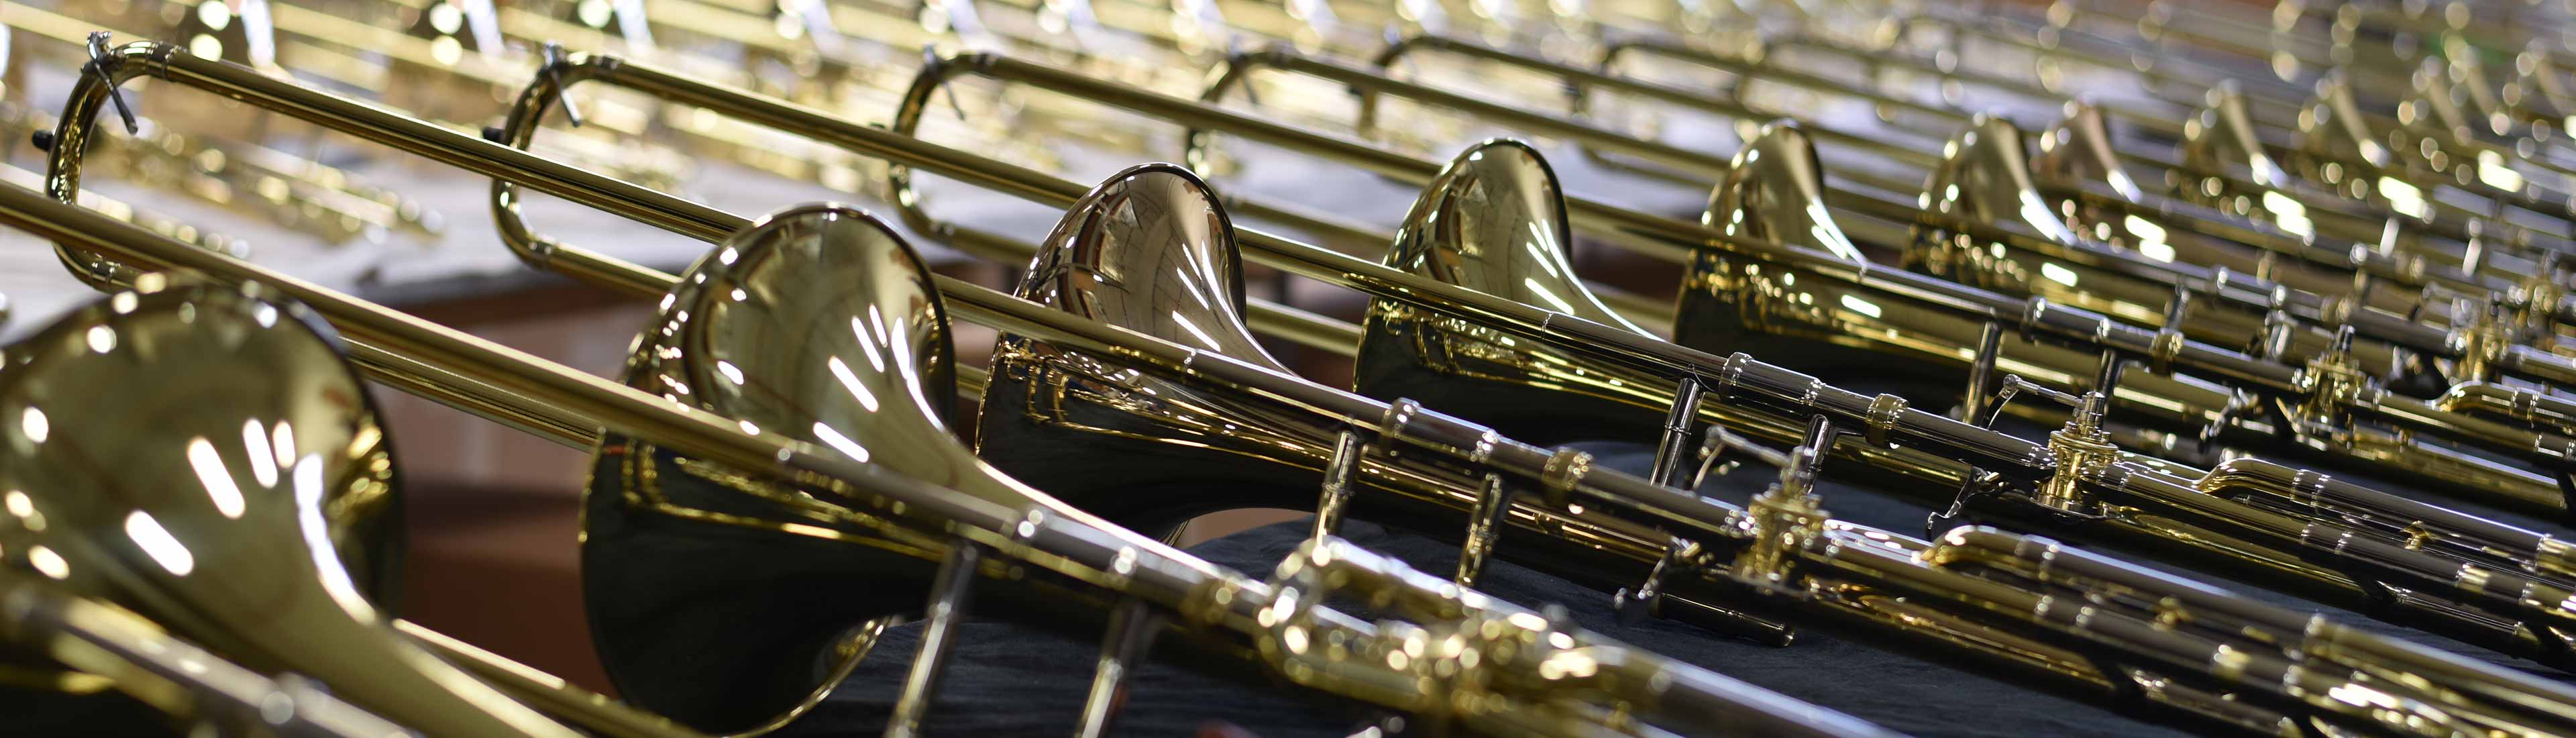 Rows of Conn-Selmer Trumpets